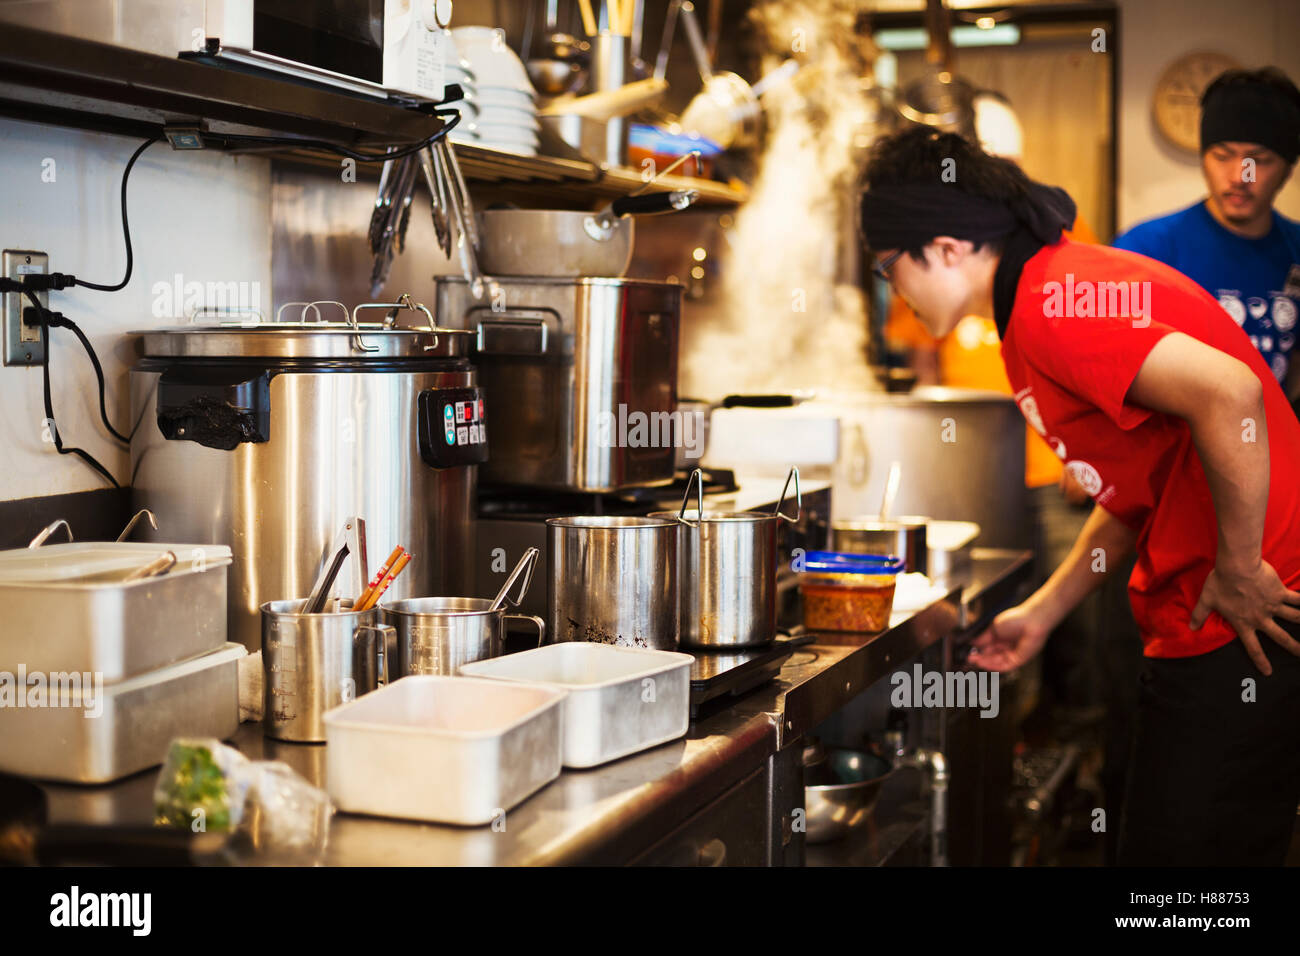 The ramen noodle shop.  Staff preparing food in a tiny kitchen - Stock Image